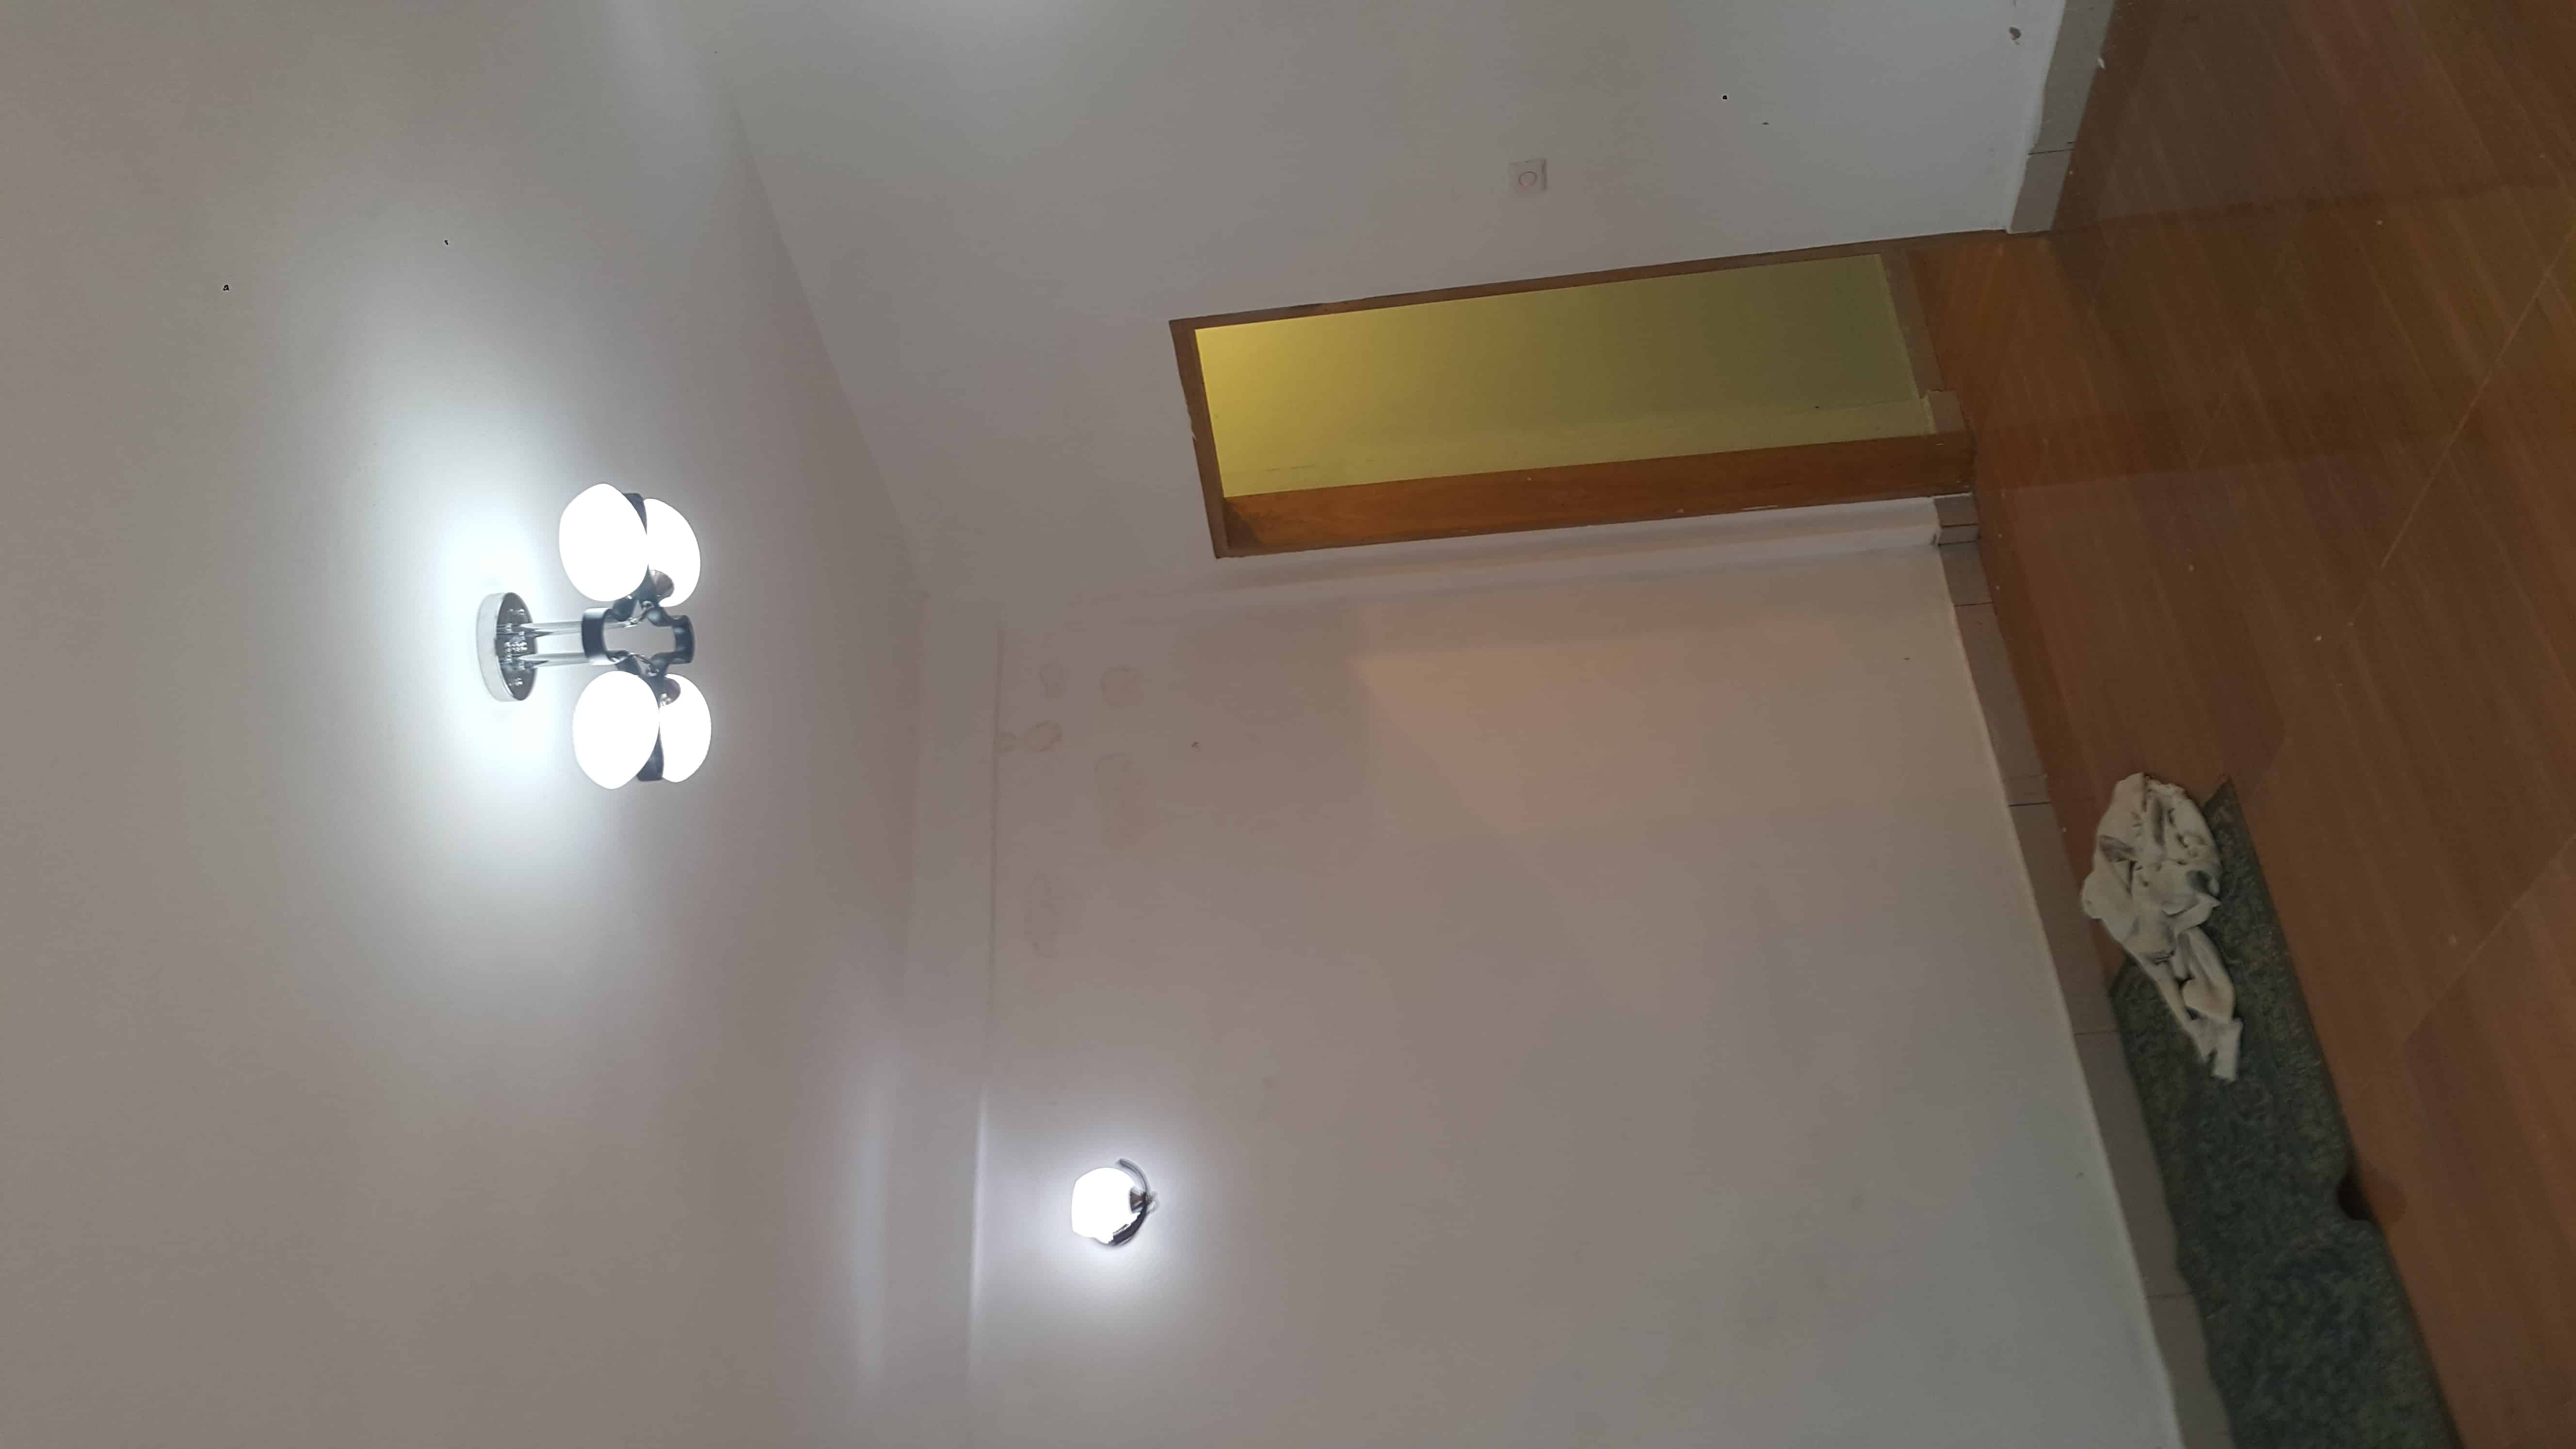 Apartment to rent - Yaoundé, Eleveur, Tradex - 1 living room(s), 2 bedroom(s), 2 bathroom(s) - 110 FCFA / month